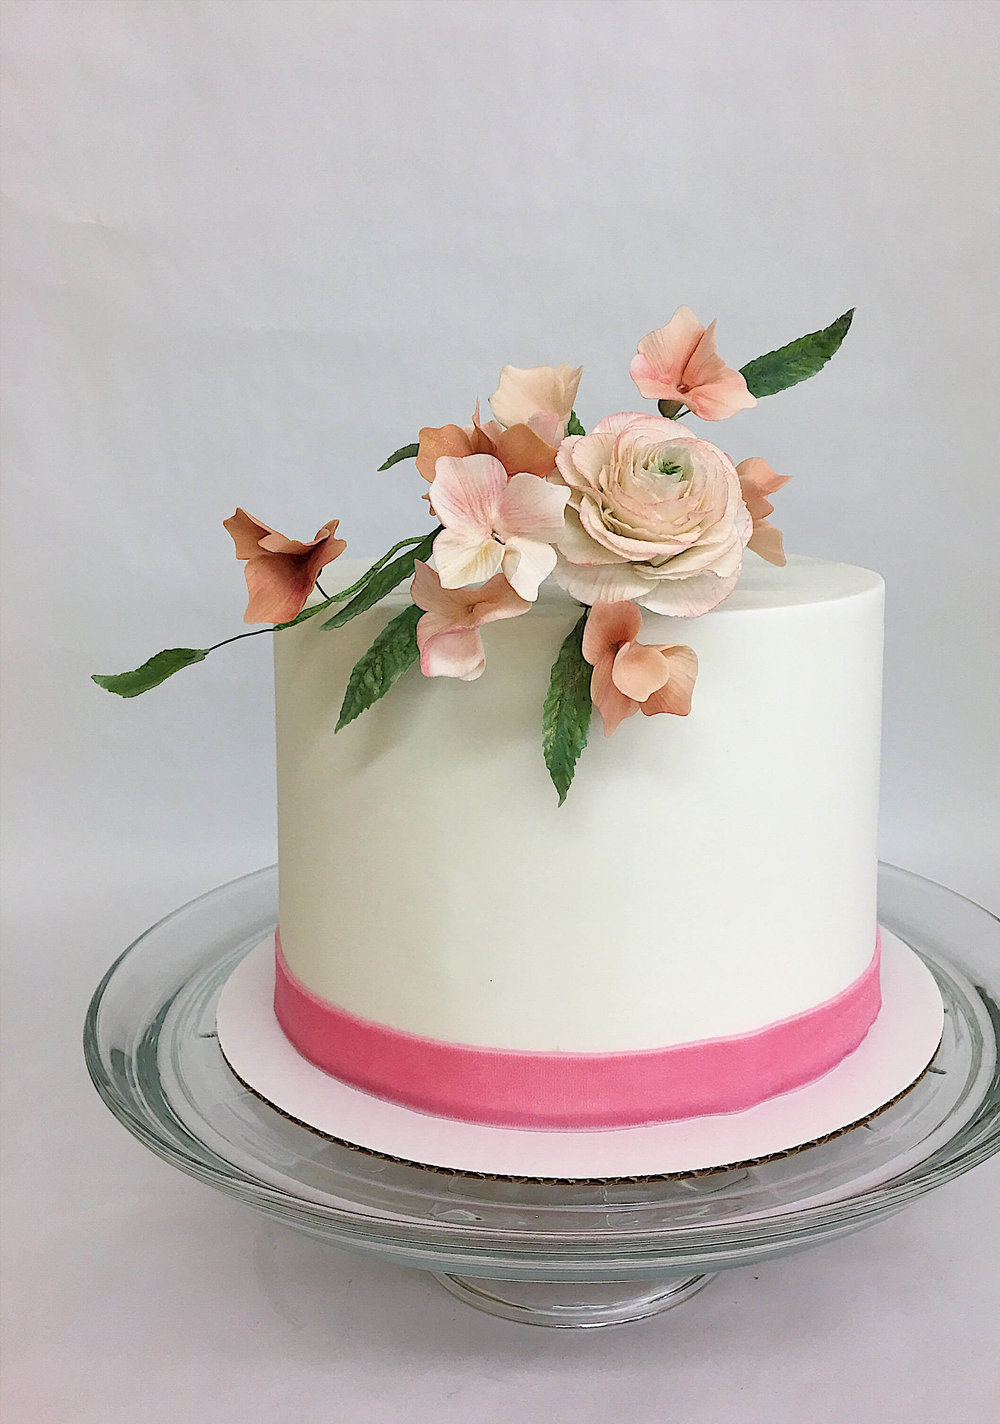 prettiest birthday cake pink sugar flowers.jpg